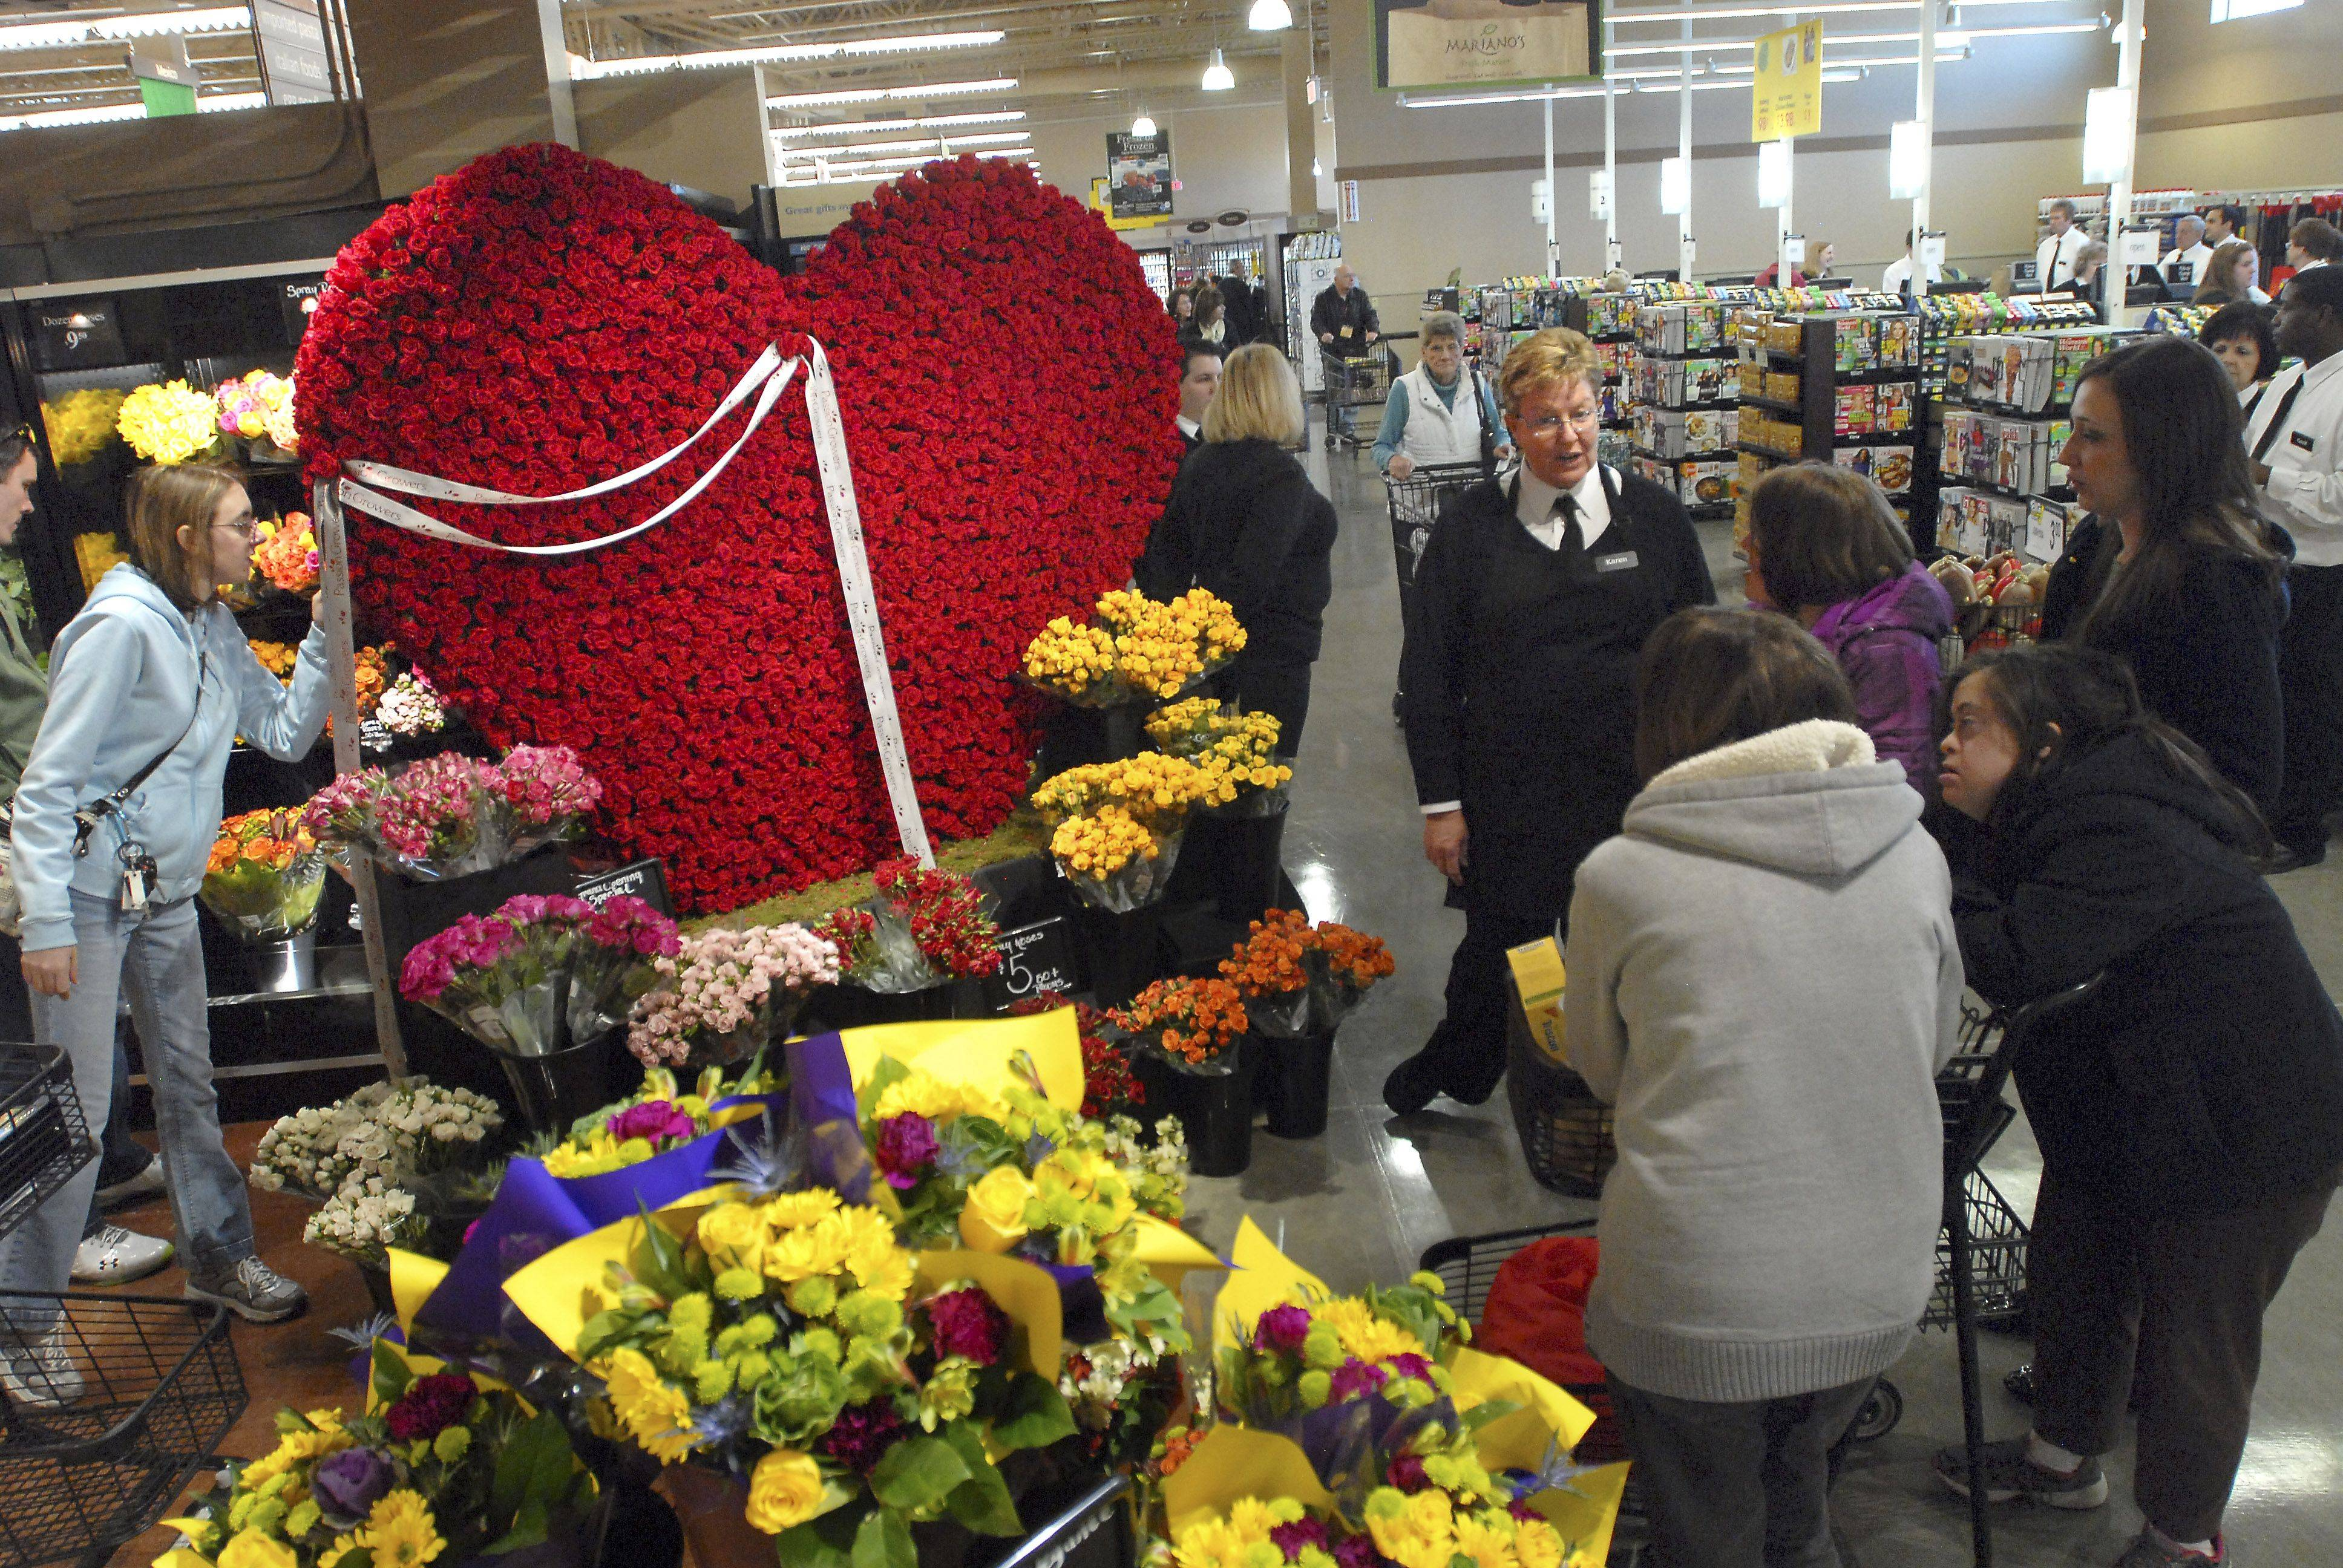 Floral department manager Karen Kunz, right, tells customers about the giant Valentine's Day display made of Forever Roses during the grand opening of Mariano's Fresh Market Tuesday in Palatine.